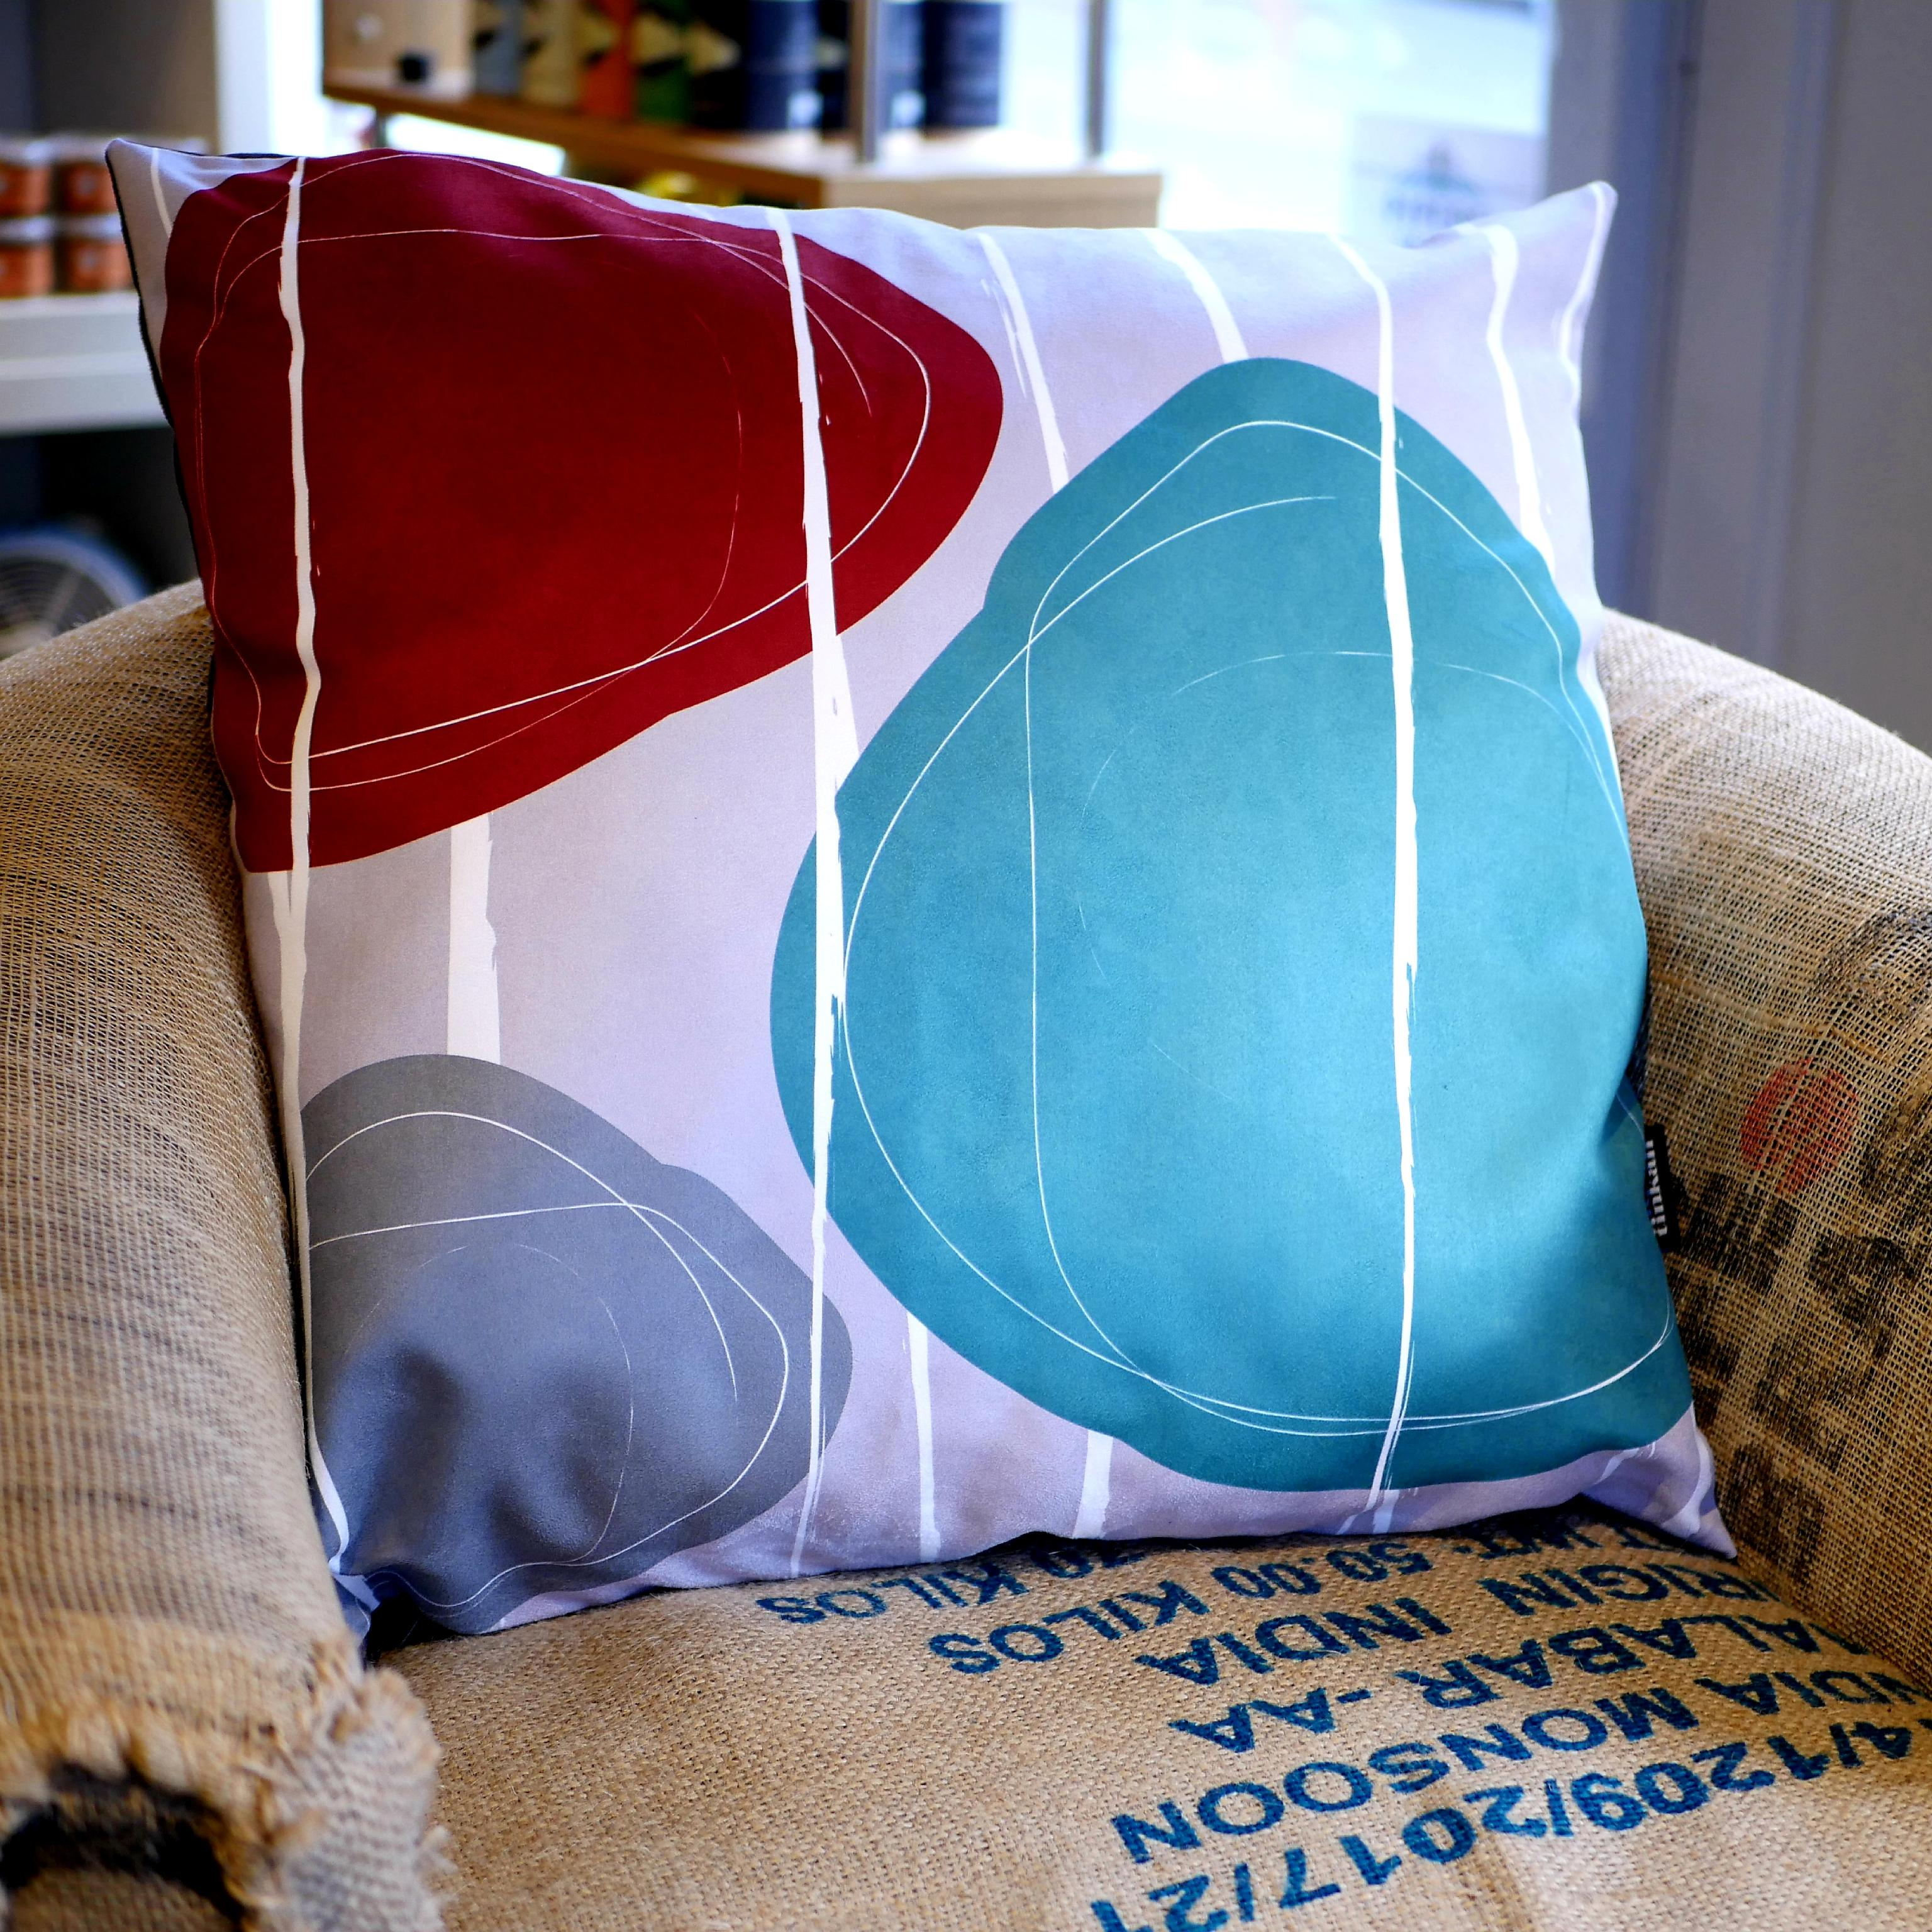 Aqua teal, red & grey faux suede soft feel Abstract Pebbles Cushion, 57cm square, with luxury inner pad designed by thetinkan. VIEW PRODUCT >>